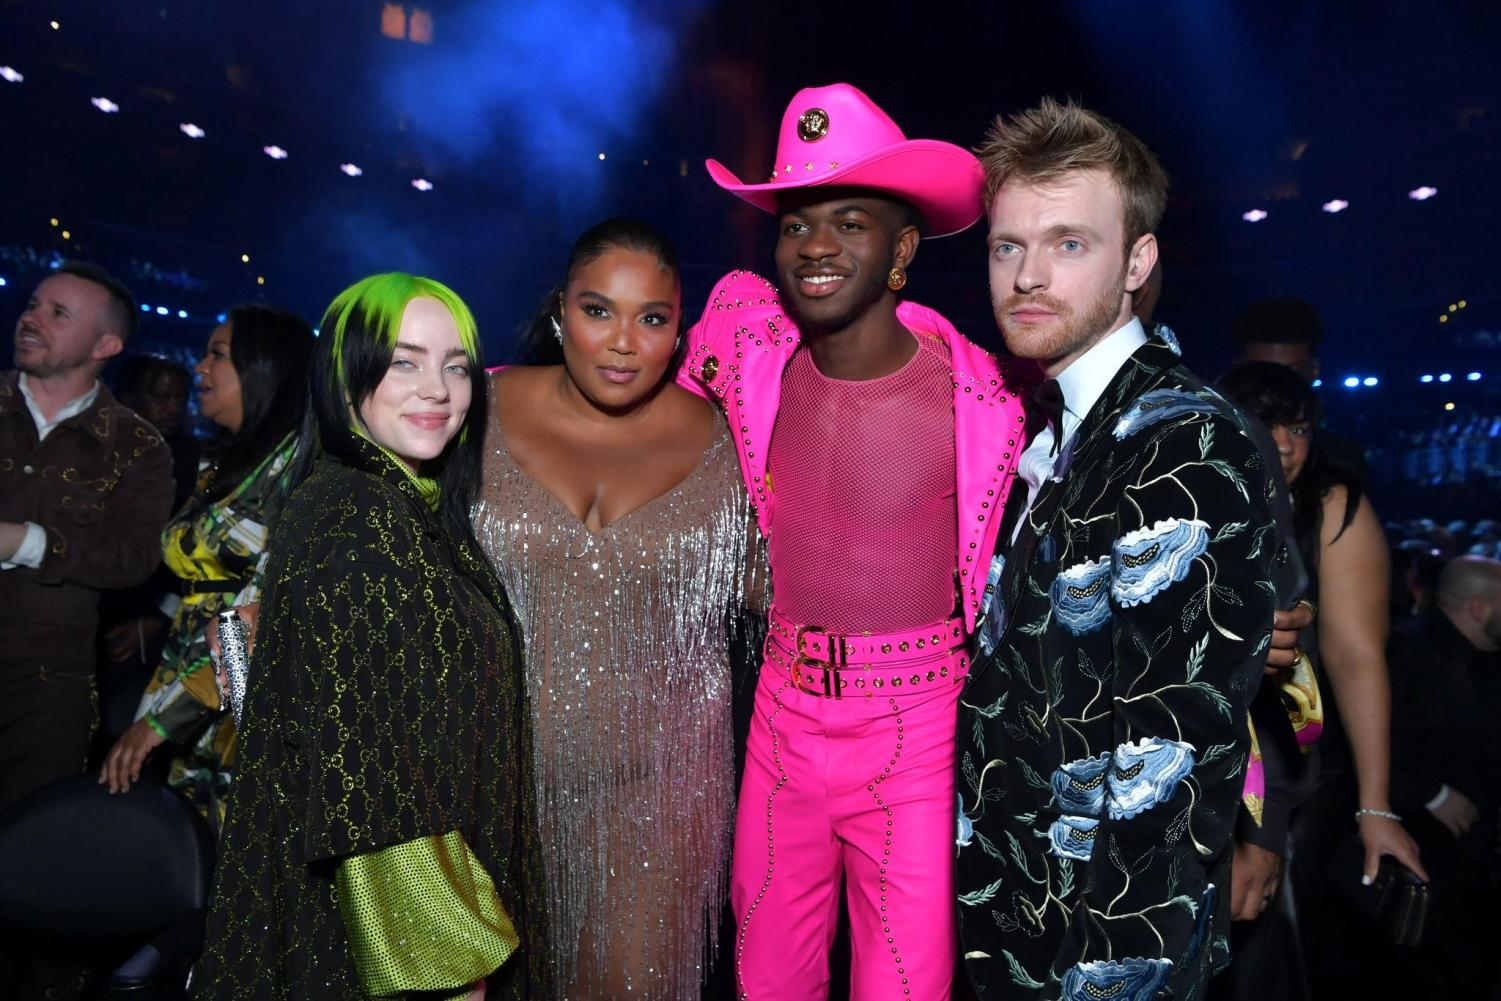 From left, Billie Ellish, Lizzo, Lil Nas X, Finneas at the 2020 Grammy's.